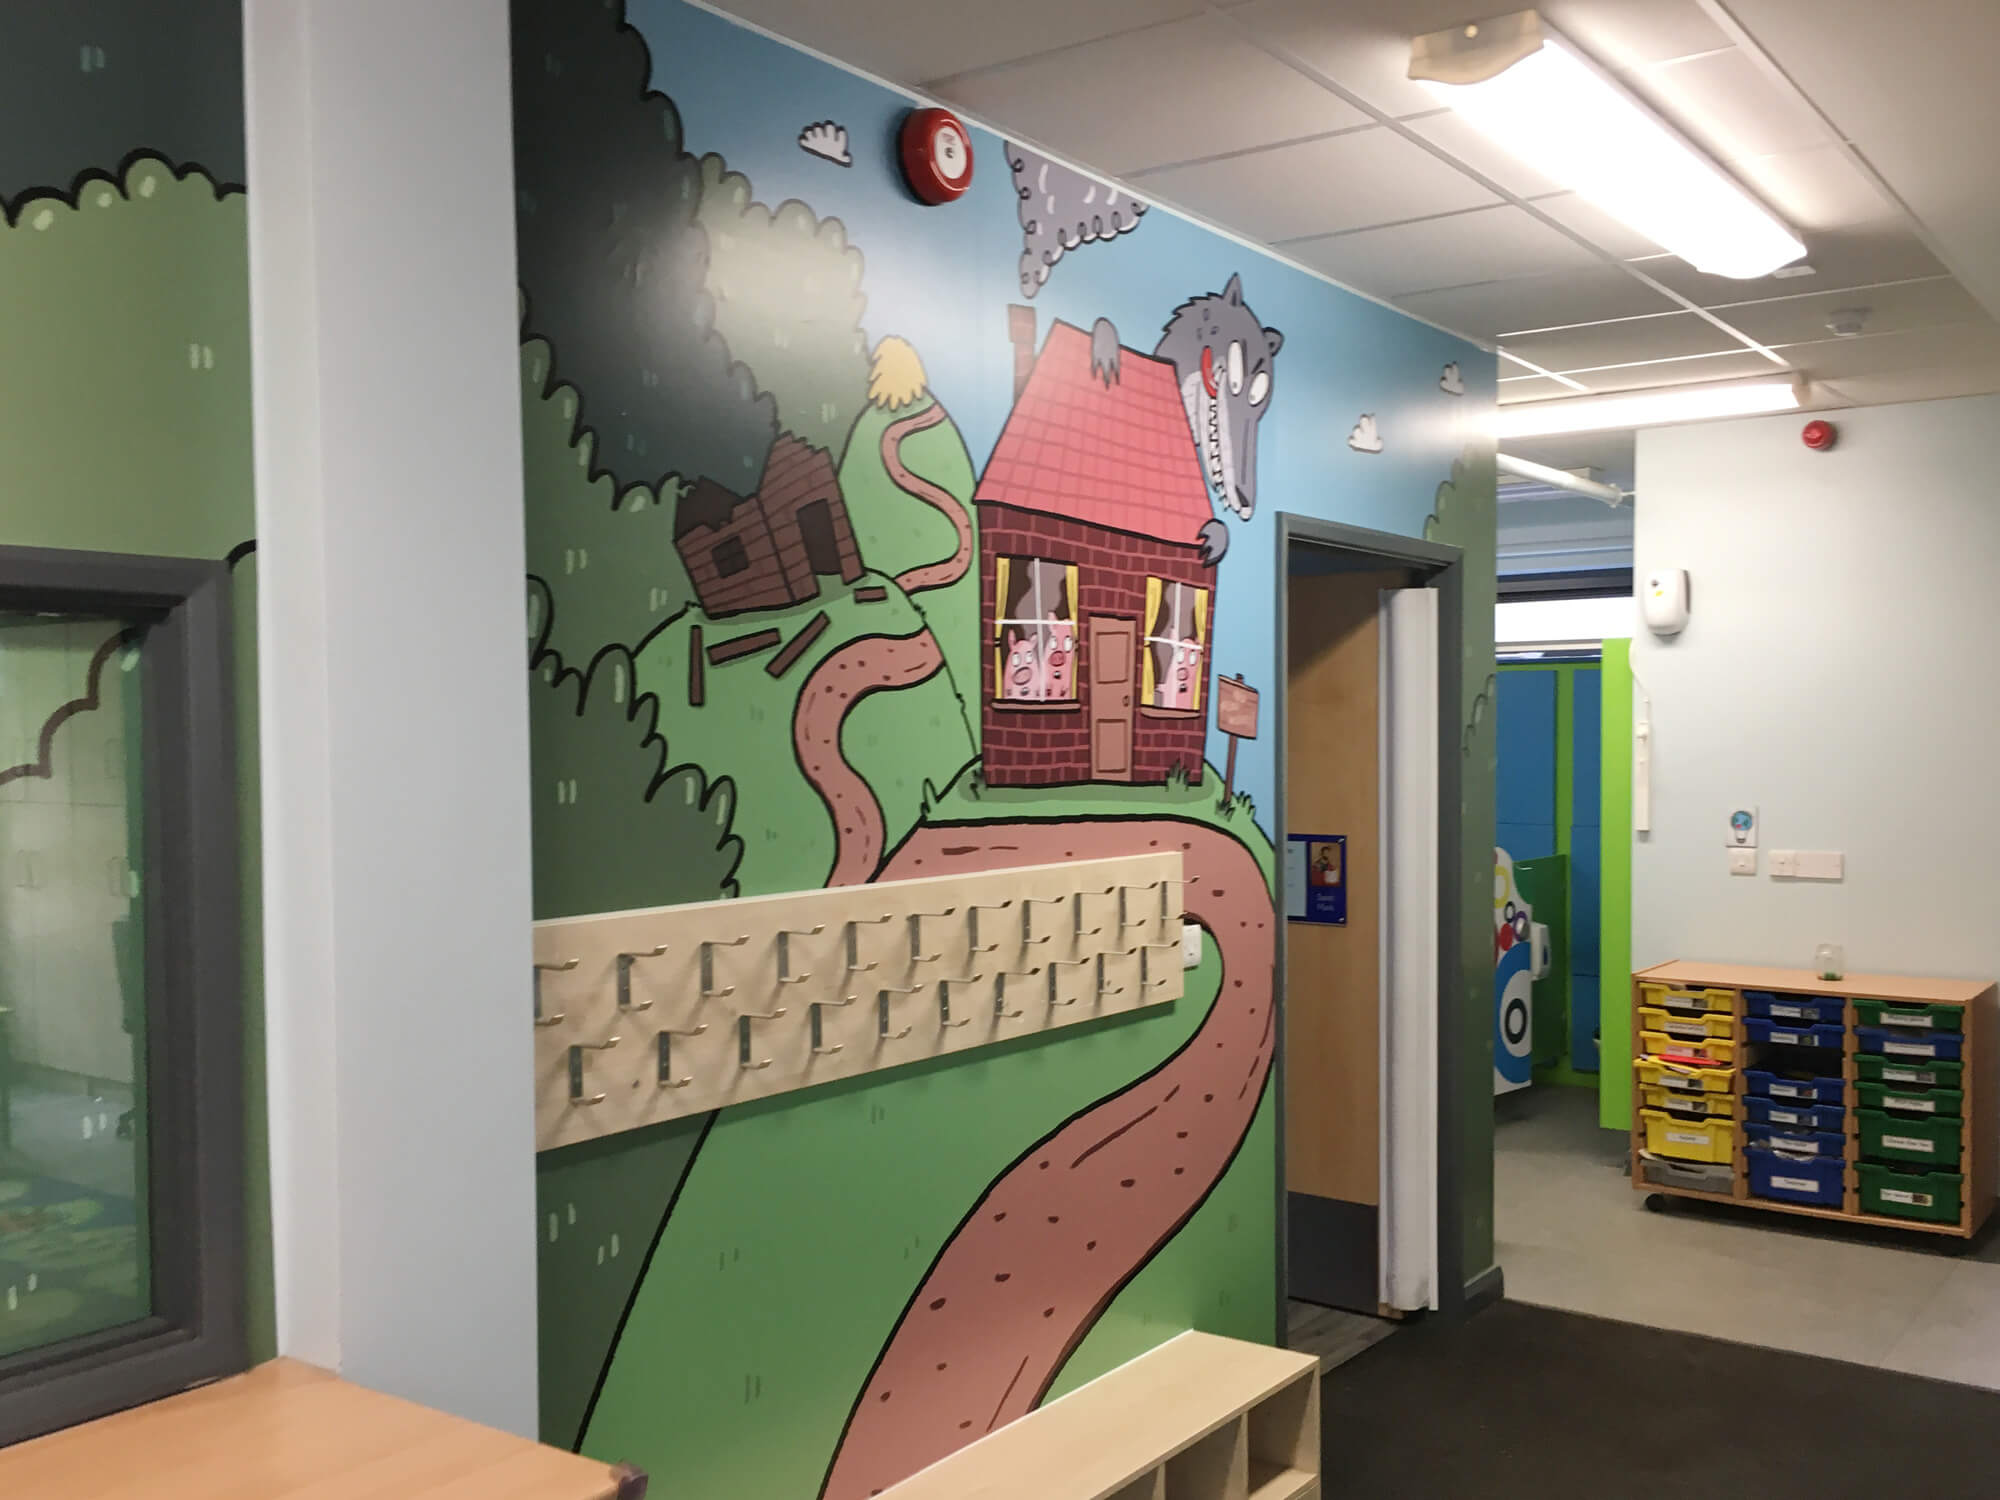 sacred_heart_primary_traditional_tales_wallgraphics_03.jpg